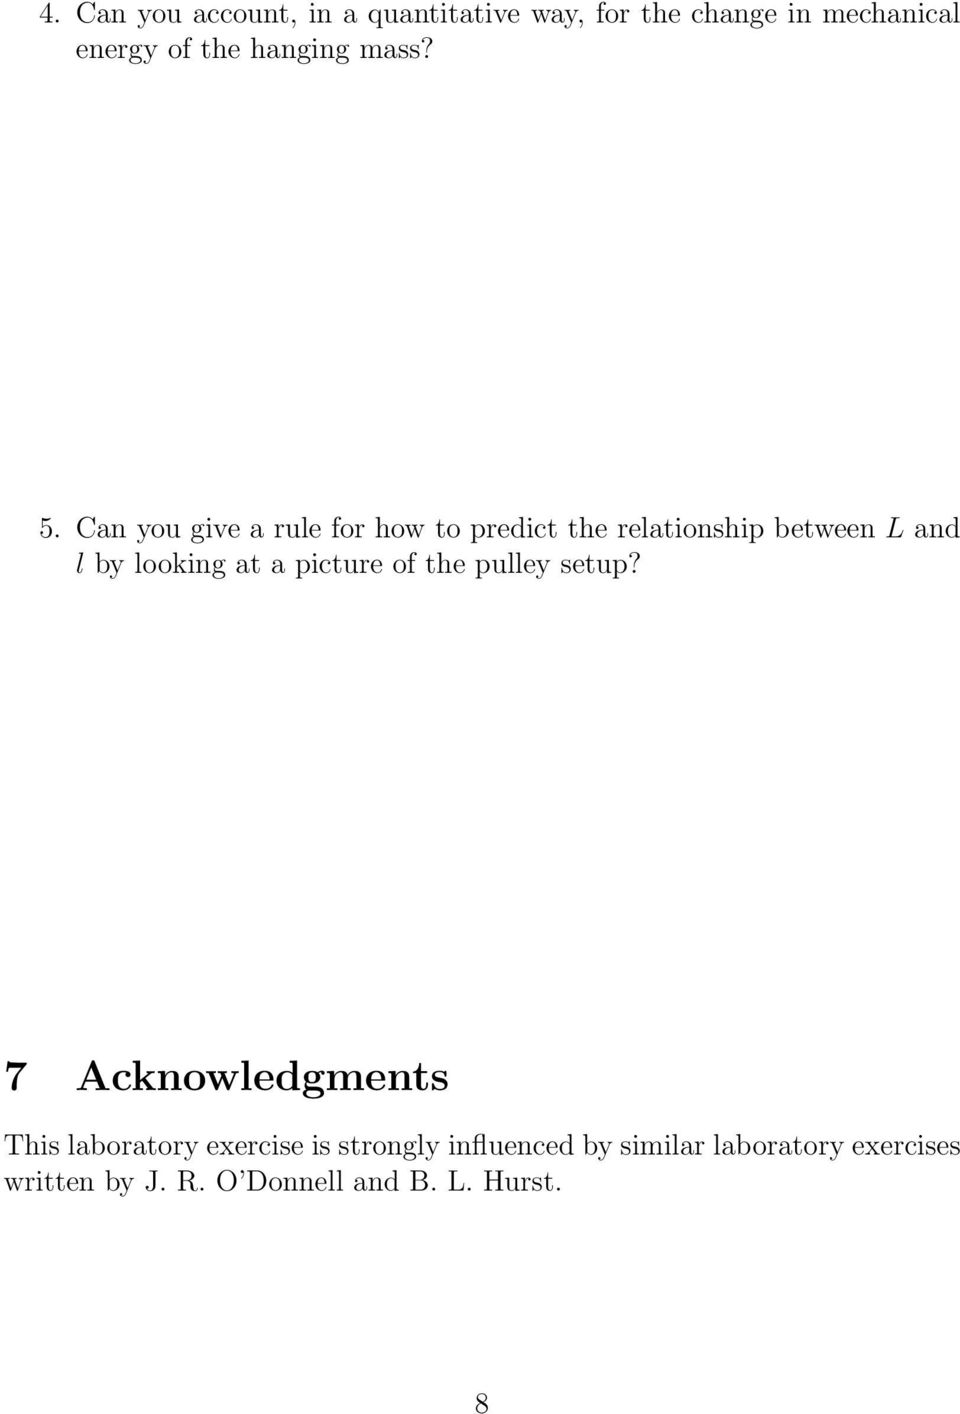 Can you give a rule for how to predict the relationship between L and l by looking at a